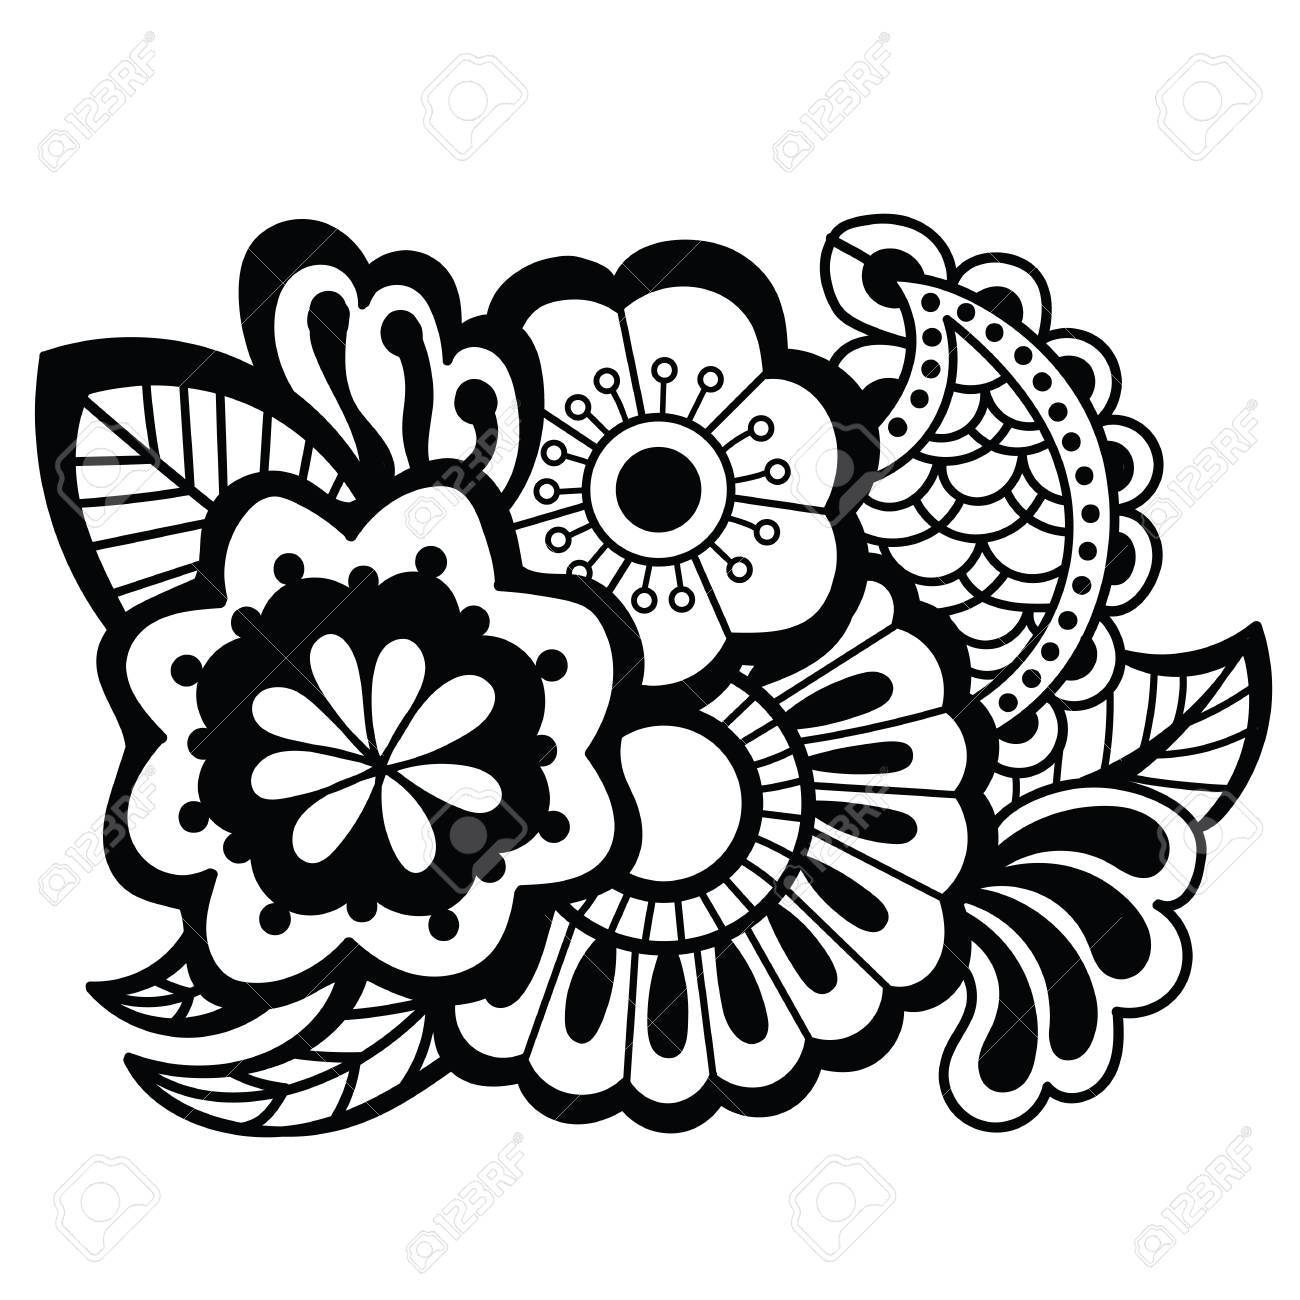 mehndi design floral pattern royalty free cliparts vectors and rh 123rf com floral pattern vector illustration floral pattern vector background